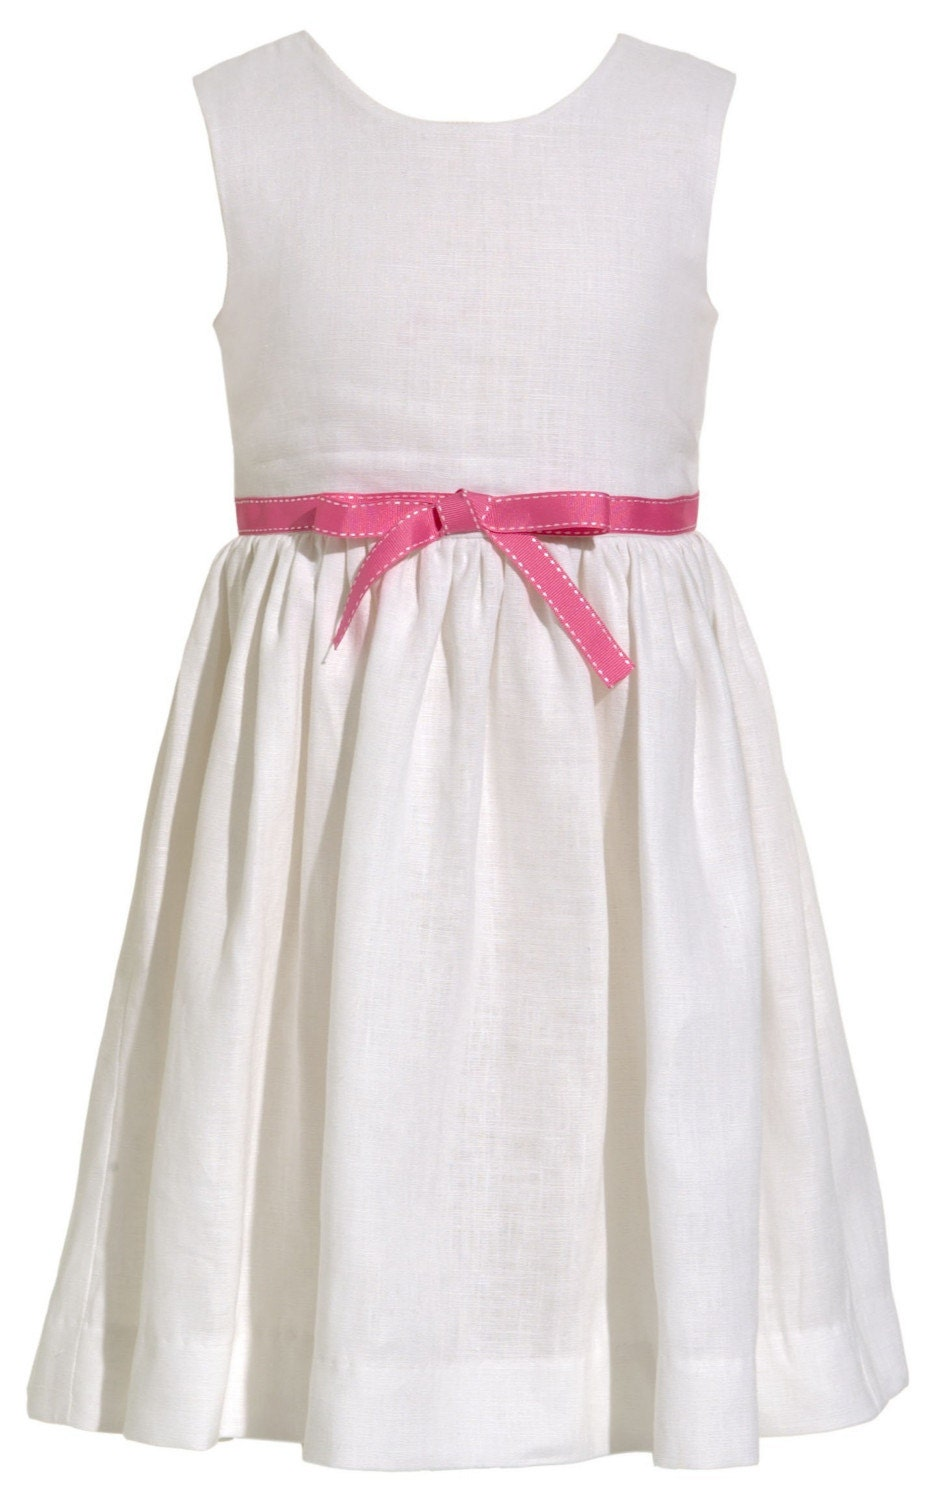 Vero Beach Dress - LIGHT PINK RIBBON AND MORE AVAILABLE